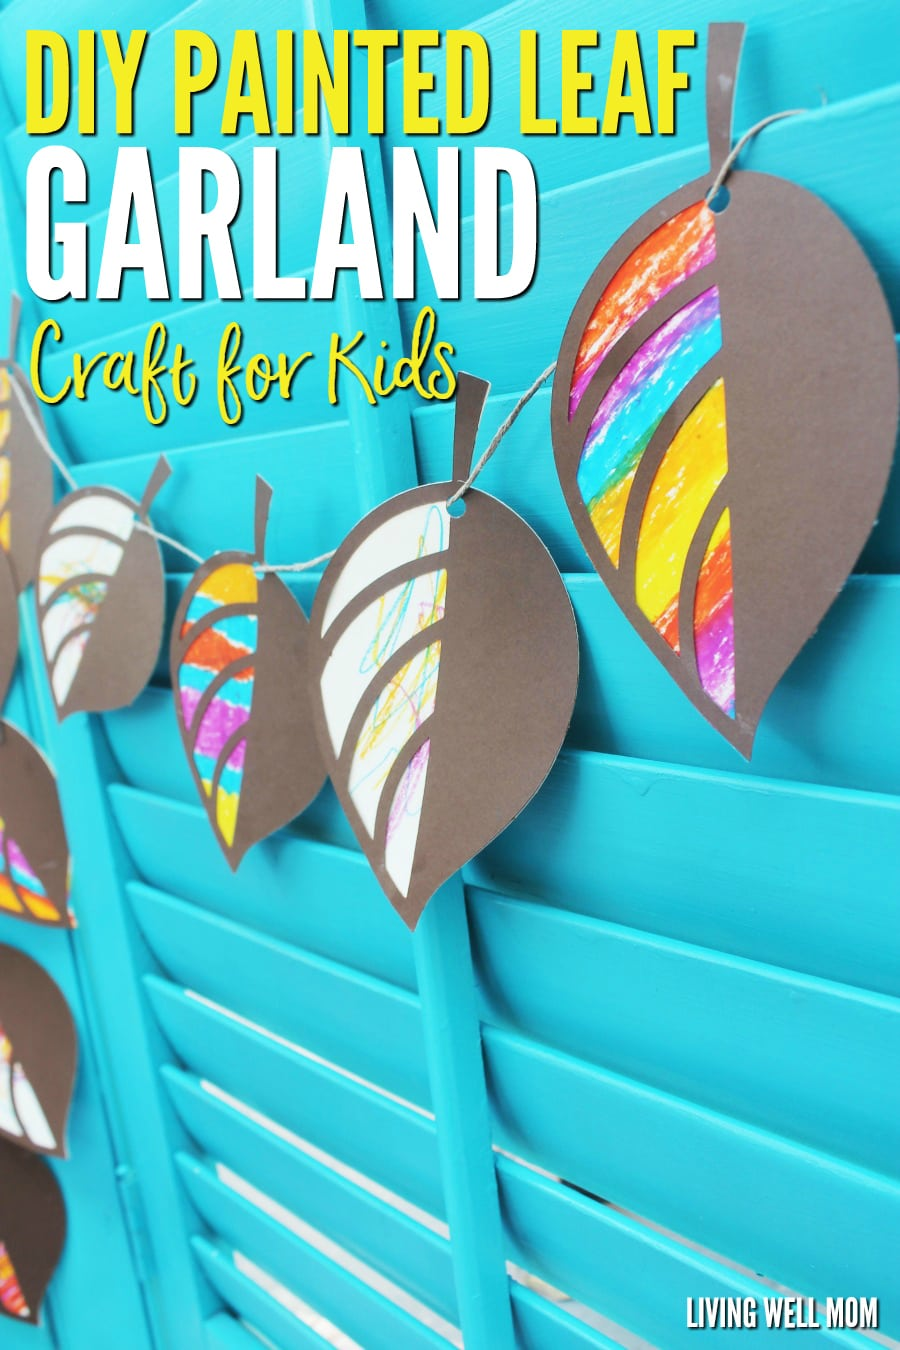 How to make a fun painted leaf garland with kids: This fun craft is a great way to welcome in the fall season. It's so easy even toddlers can participate.